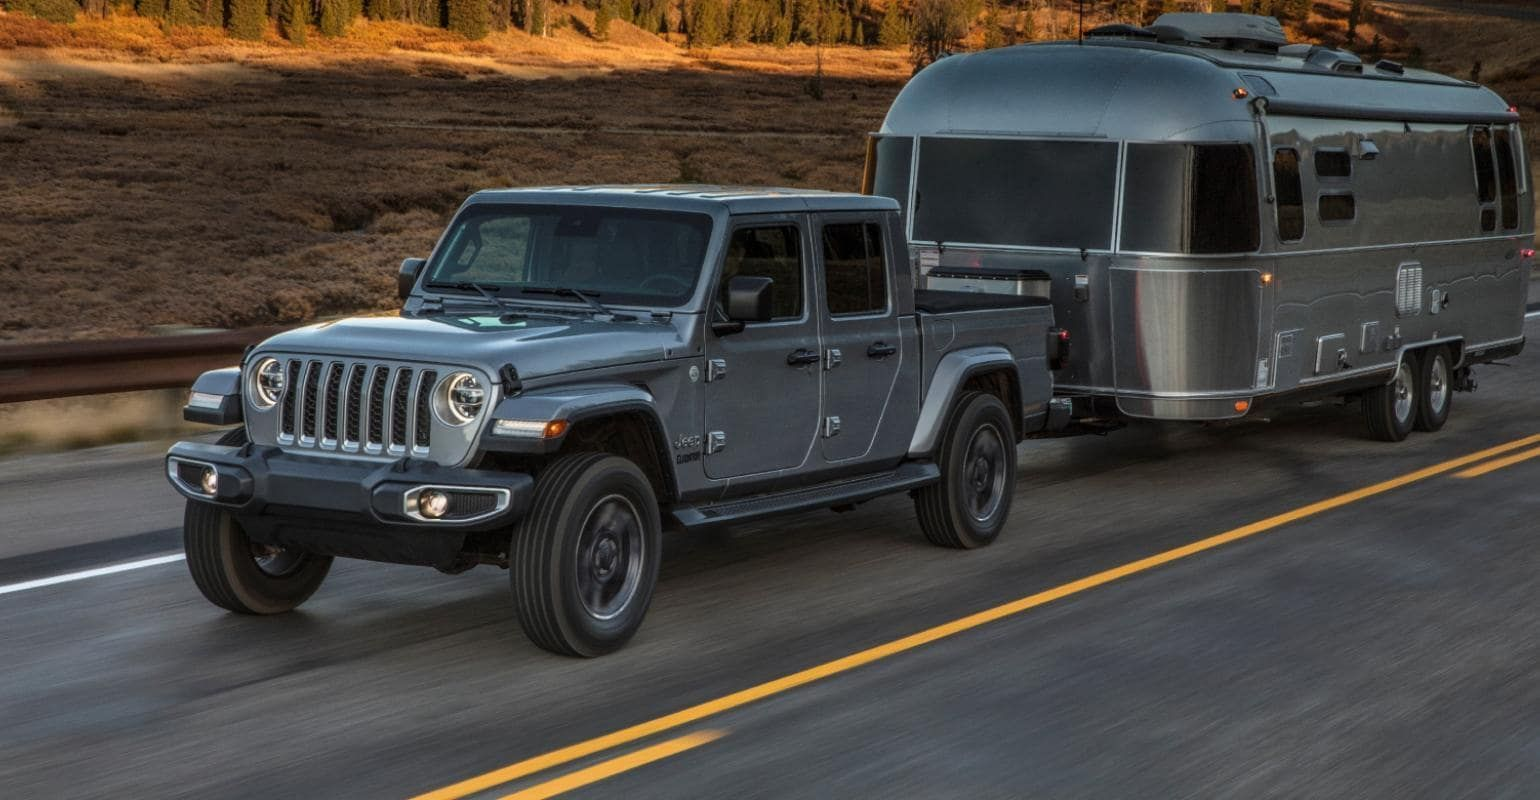 2020 Jeep Cherokee Towing Capacity With Images Jeep Gladiator